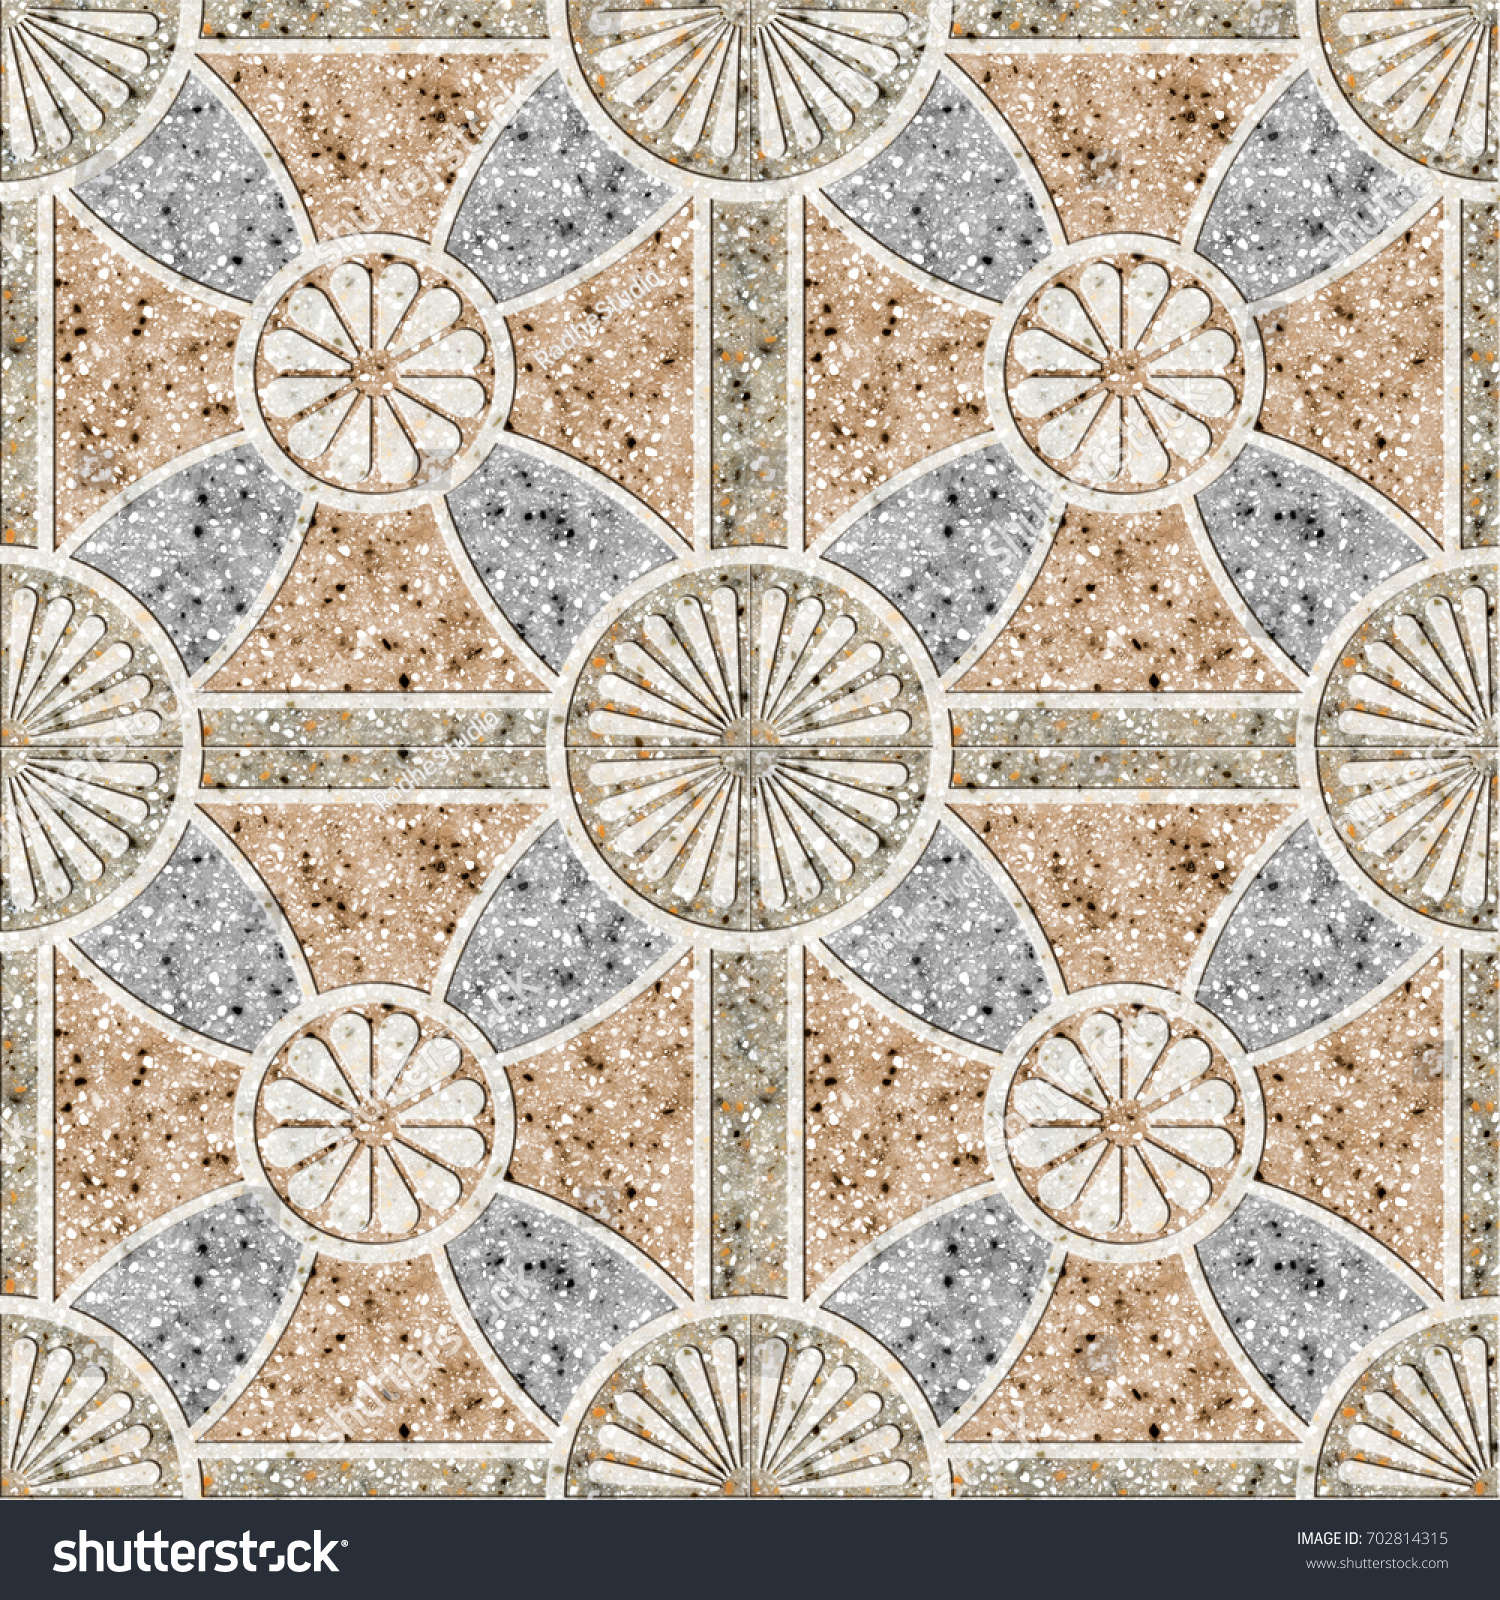 Marble mosaic floor tiles geometric square stock illustration marble mosaic floor tiles geometric square pattern wall tiles dailygadgetfo Image collections